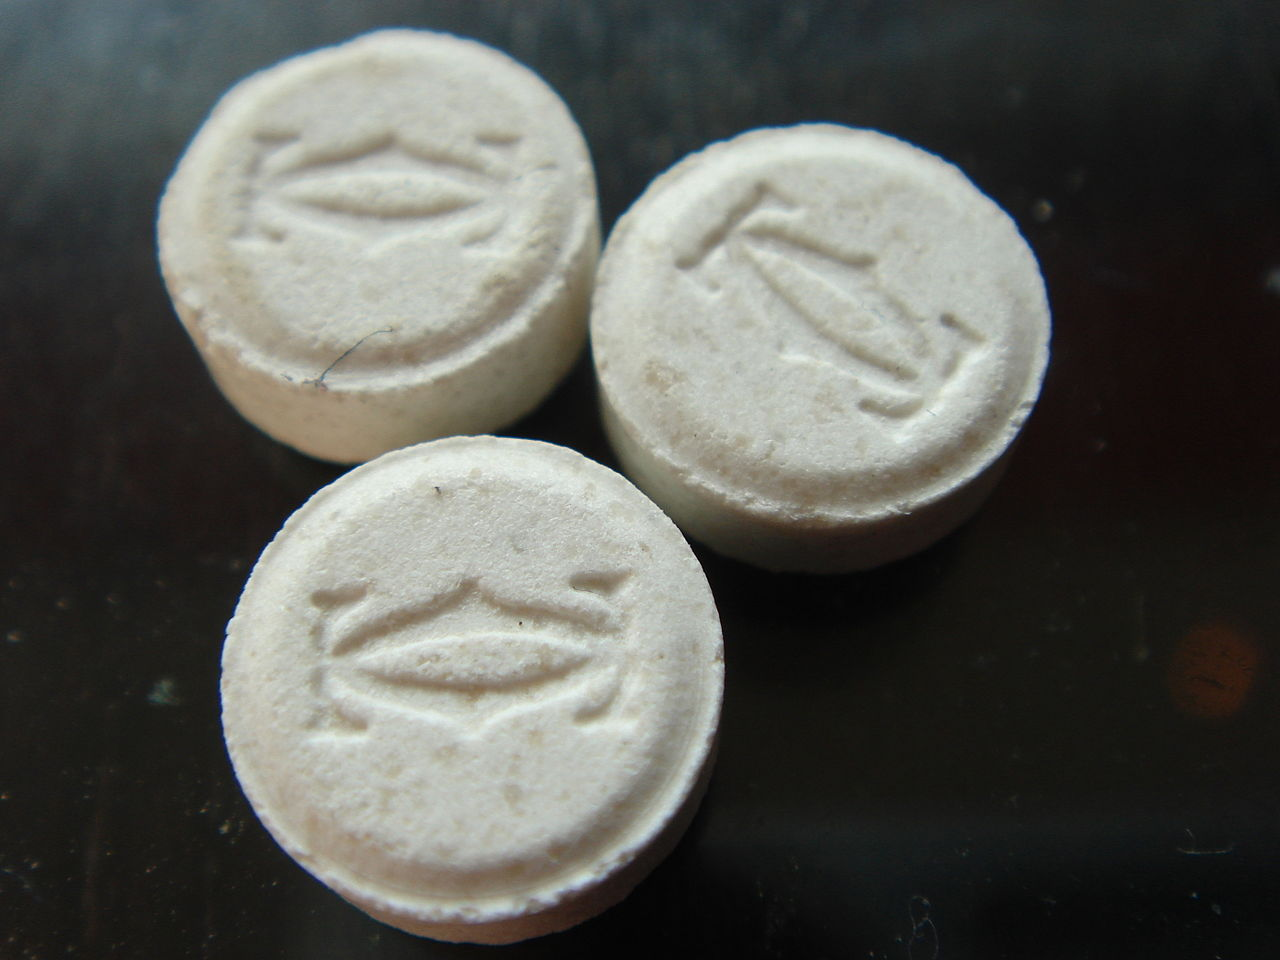 ecstasy use among young people in South America